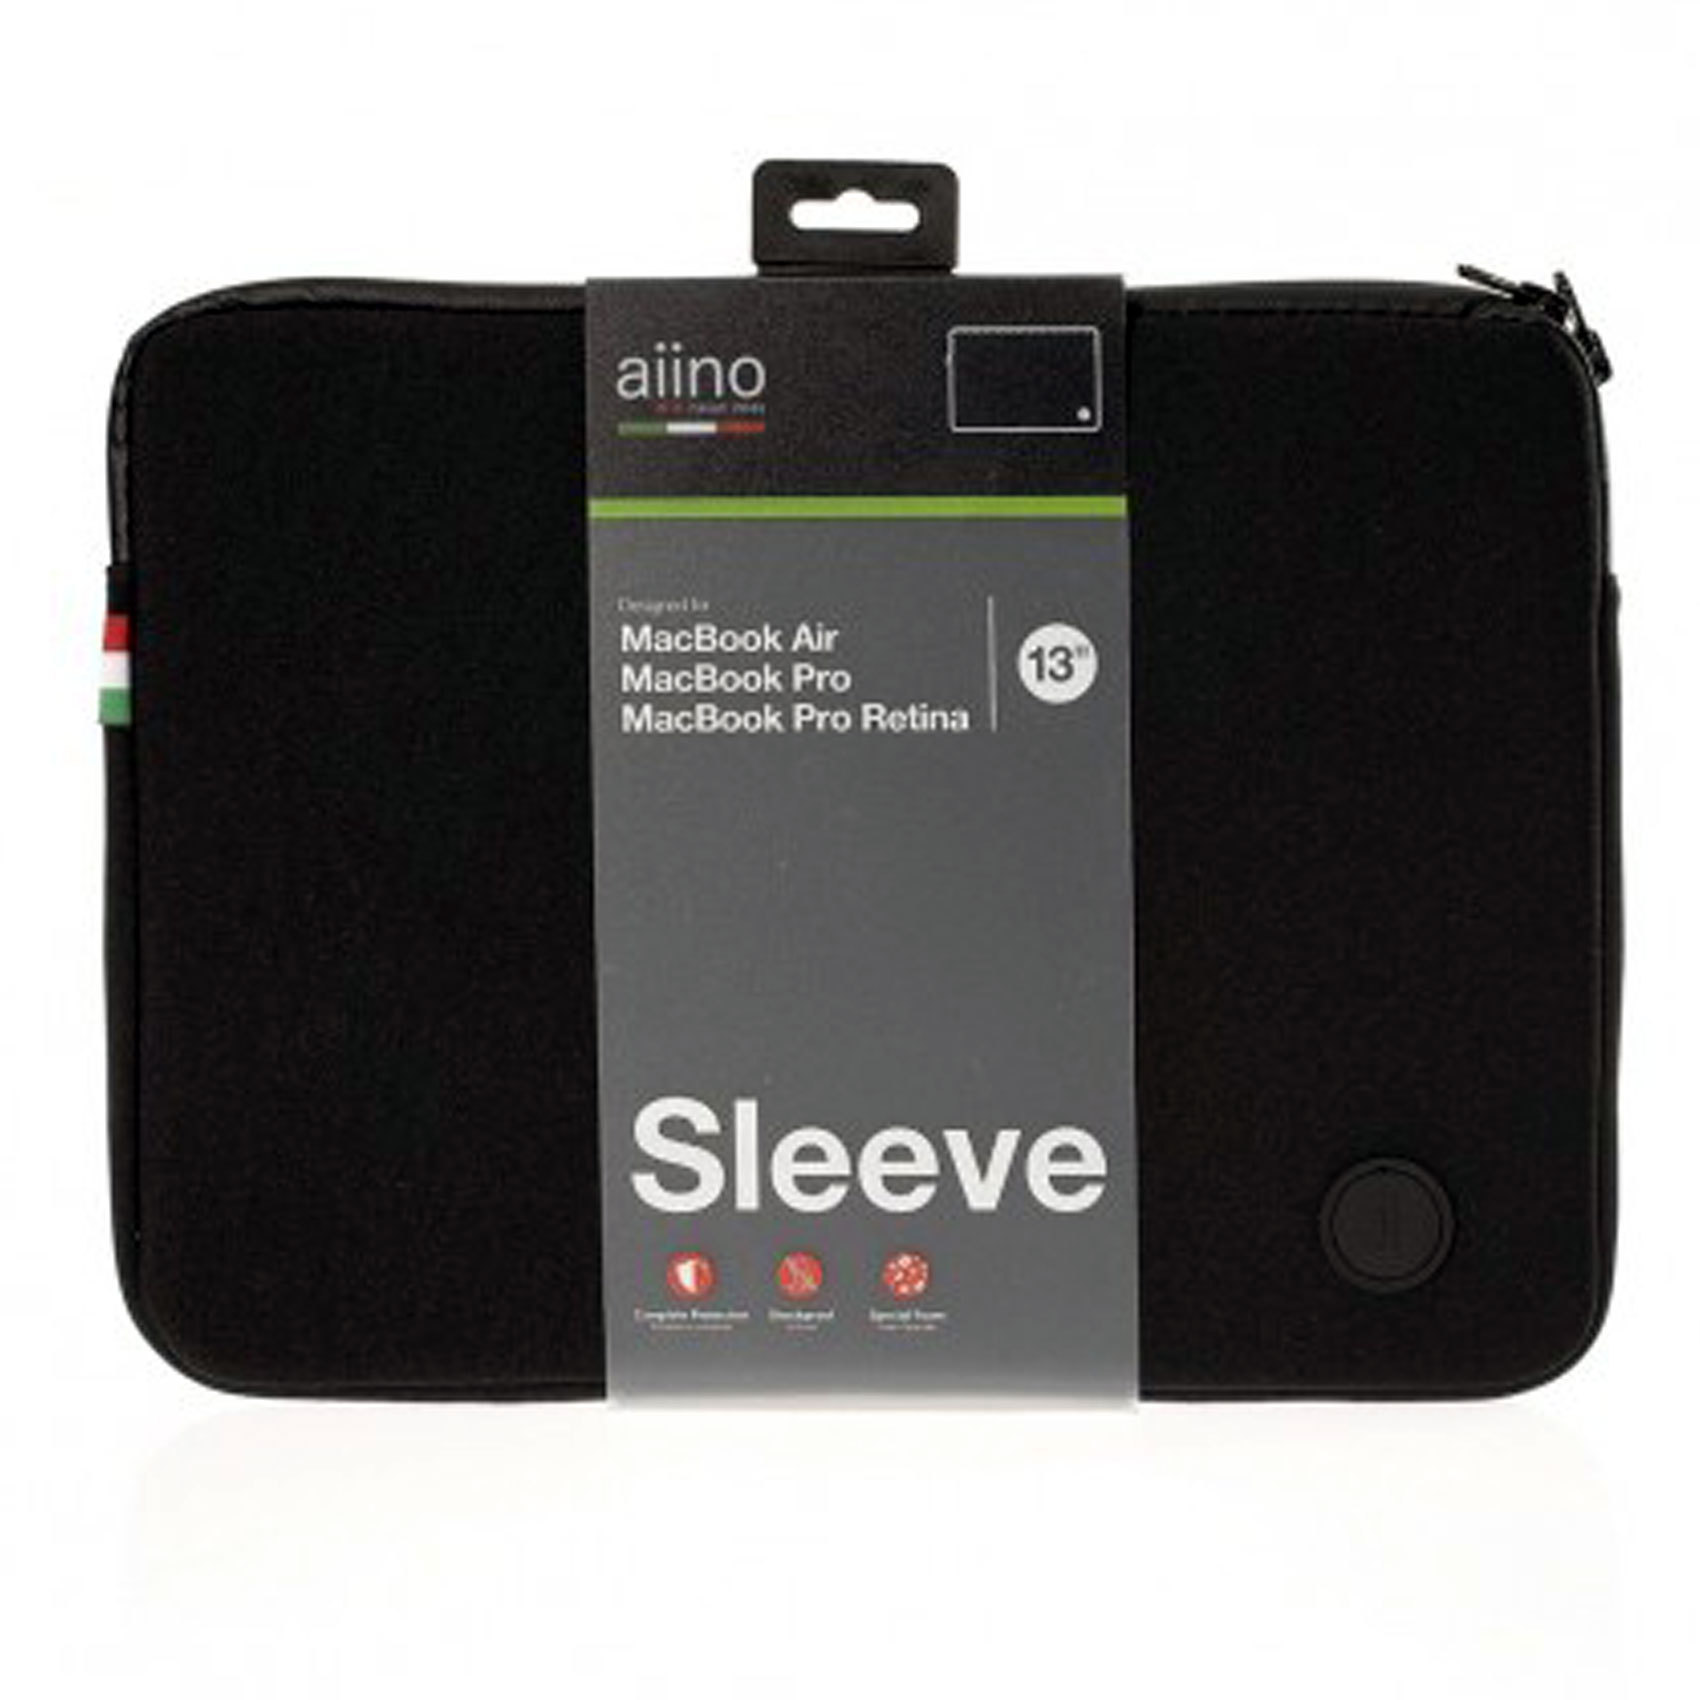 AIINO SLEEVE ANTI-SHK MCB 13